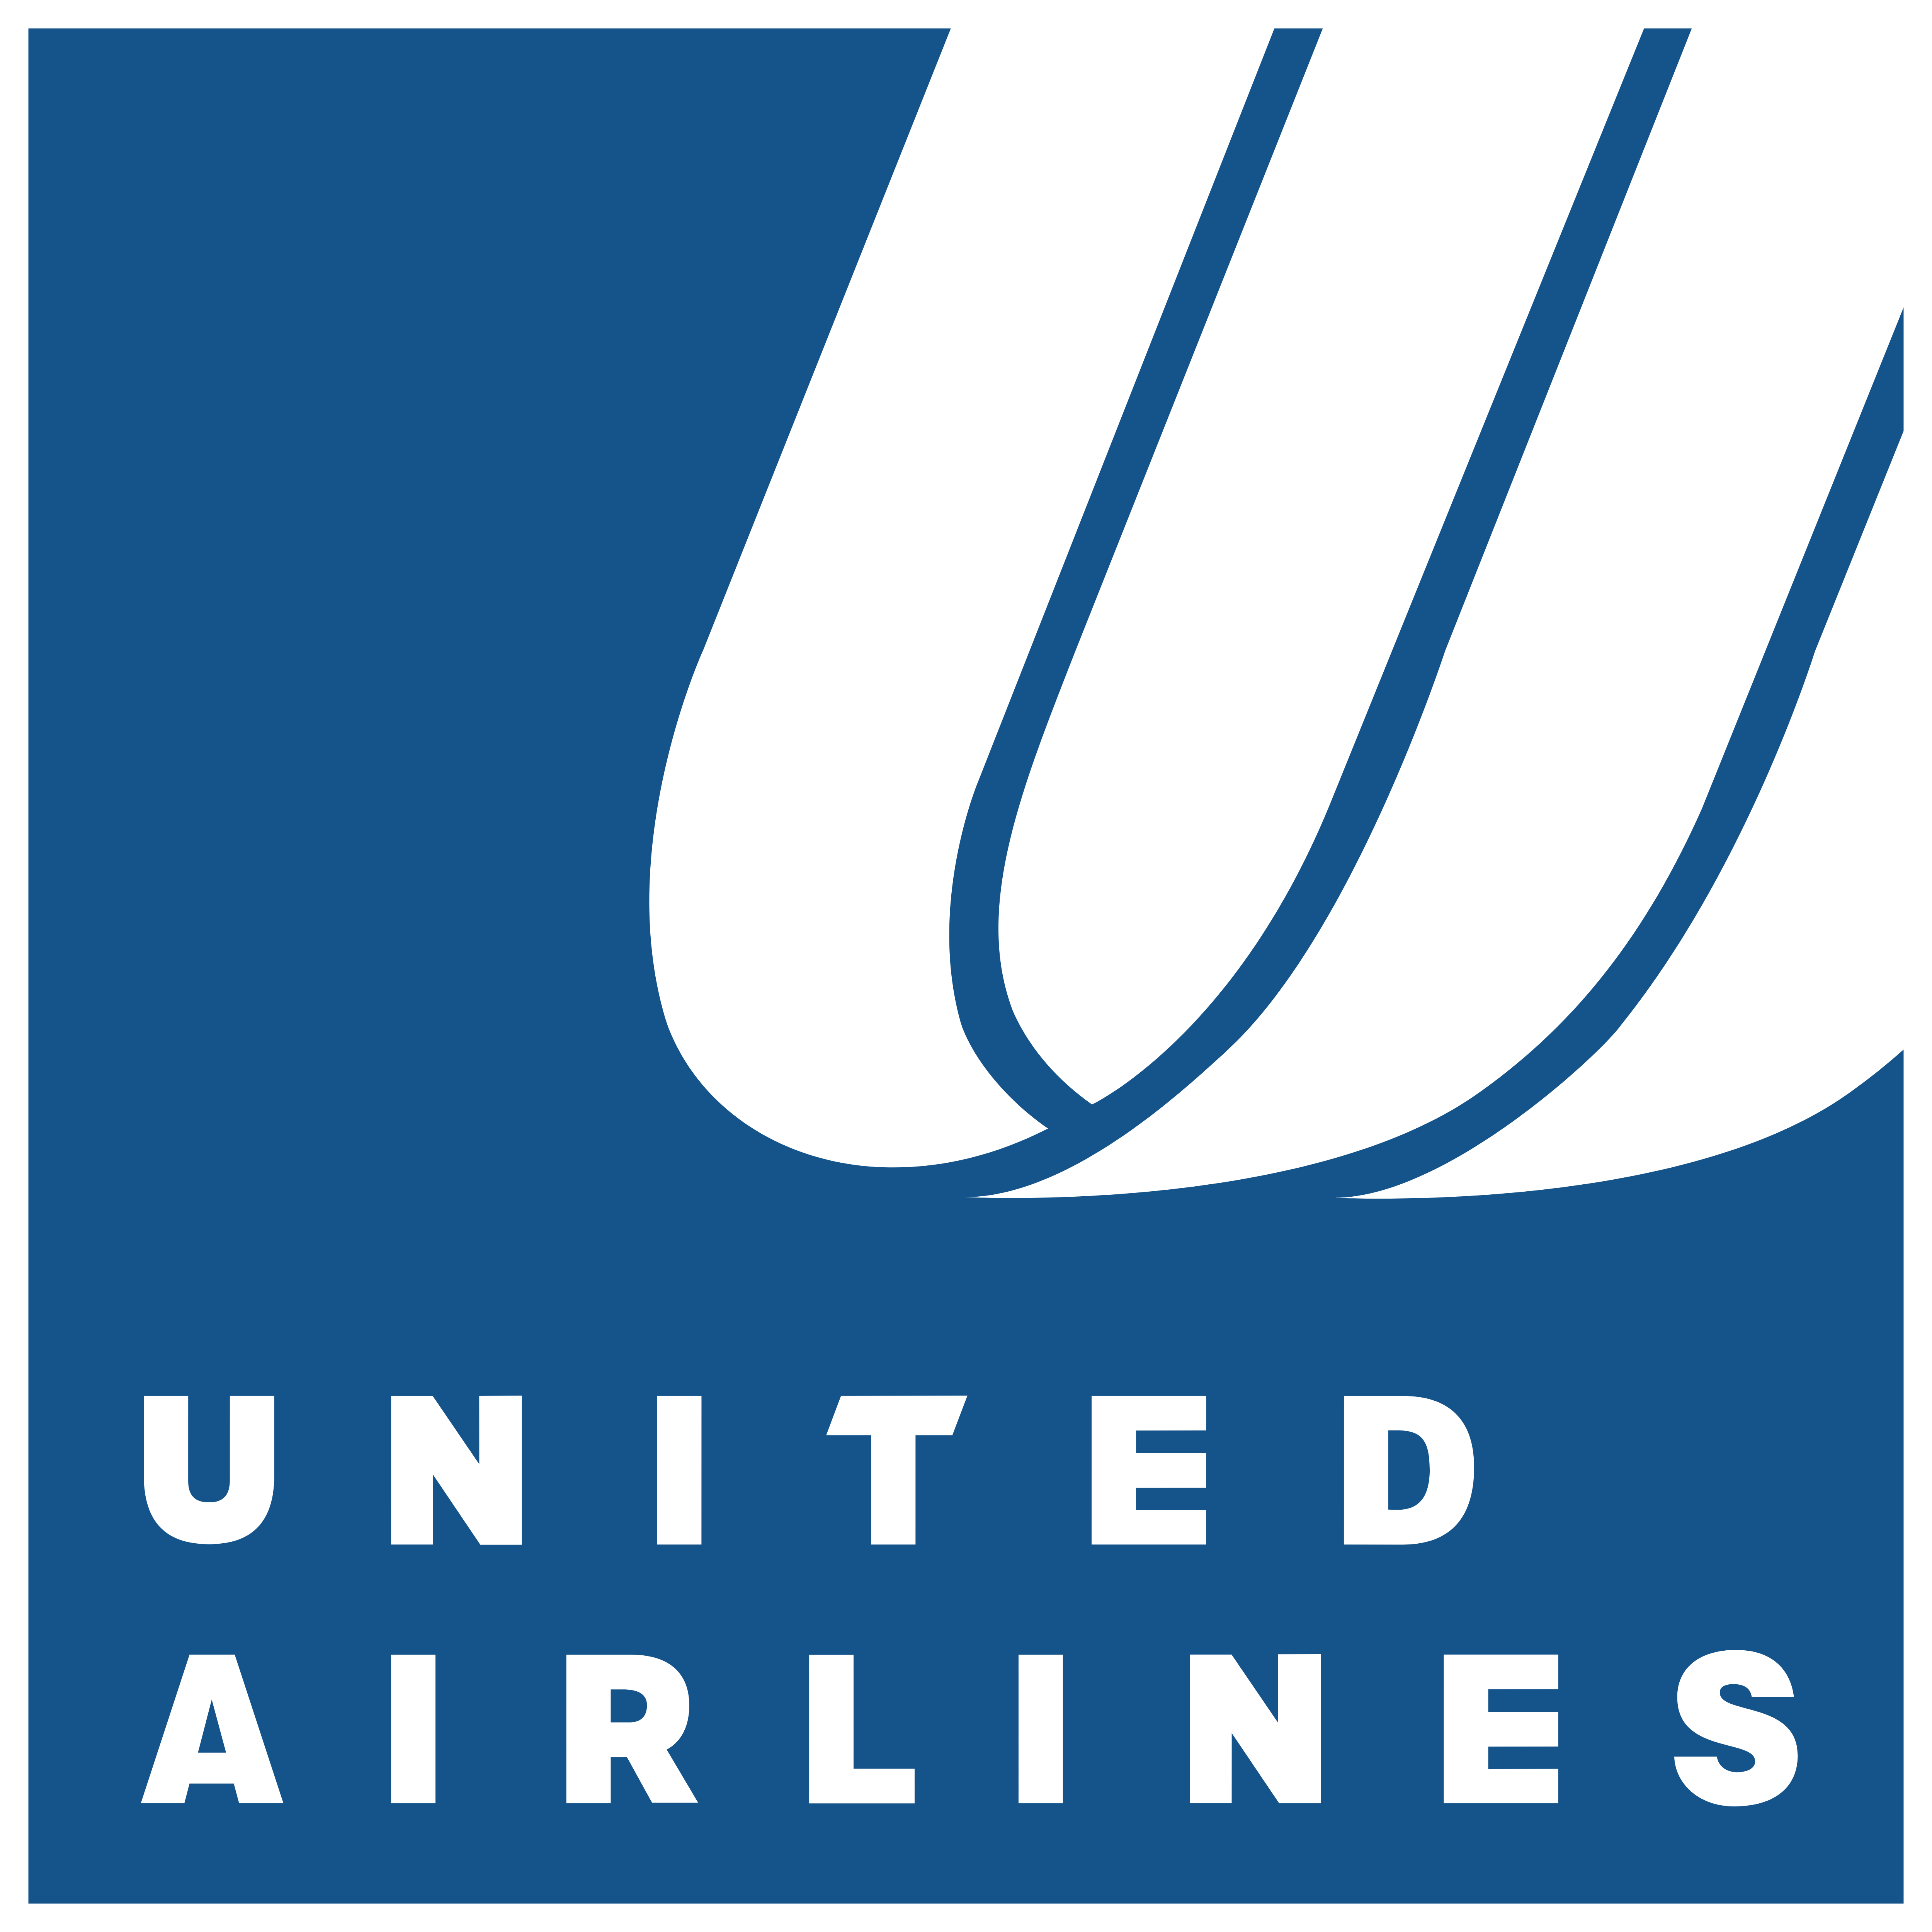 United Airlines – Logos Download